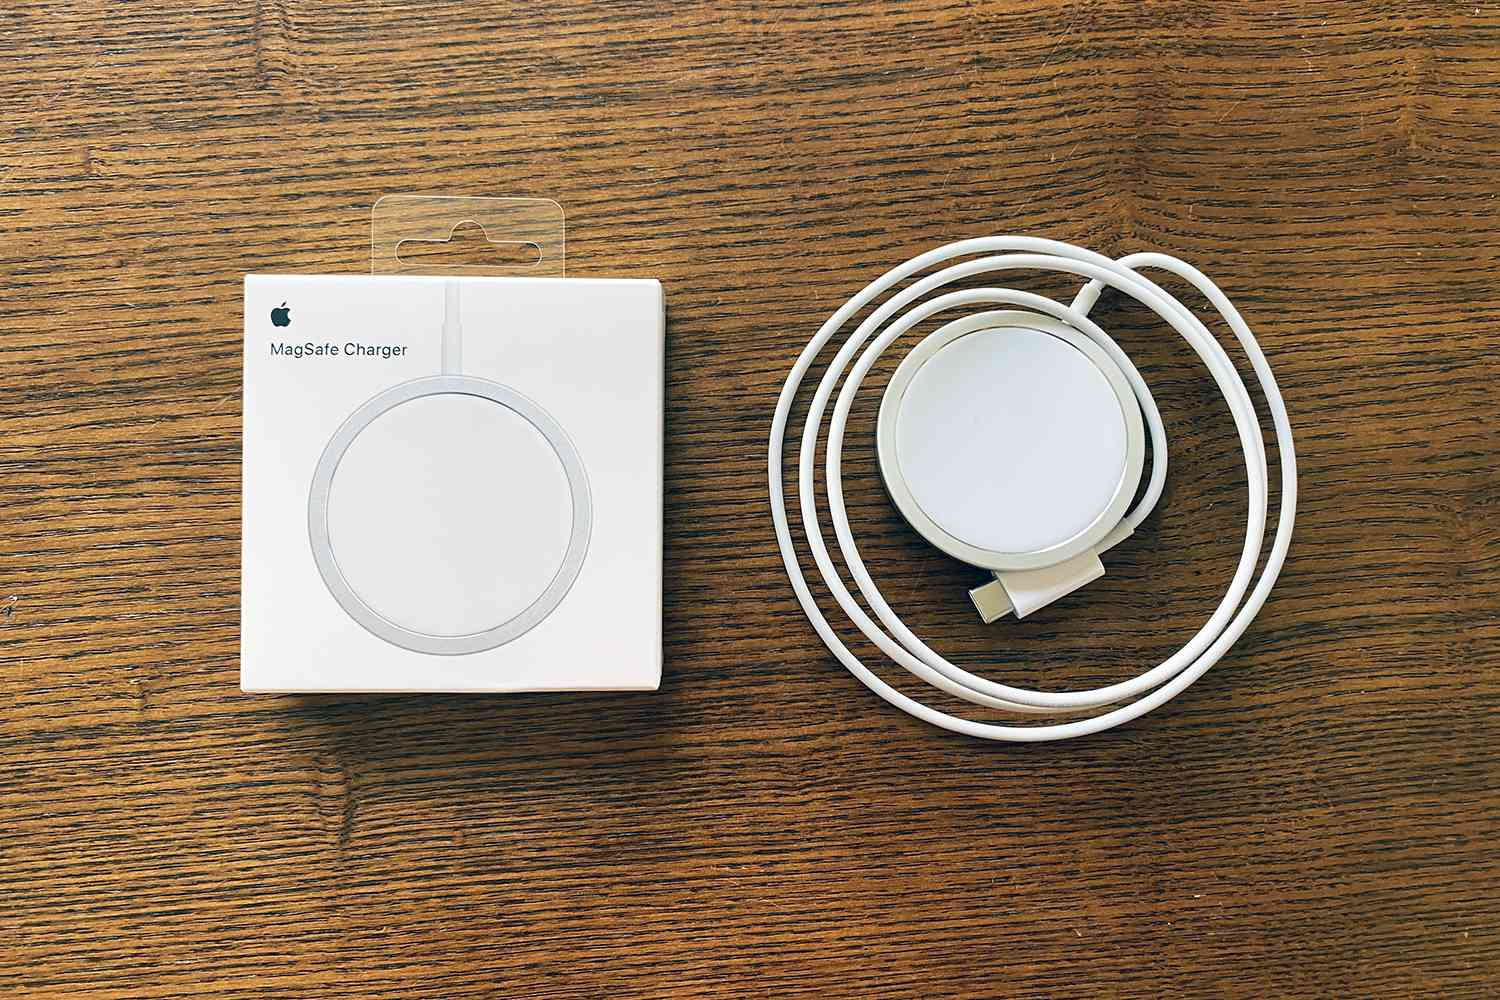 Apple's MagSafe Charger